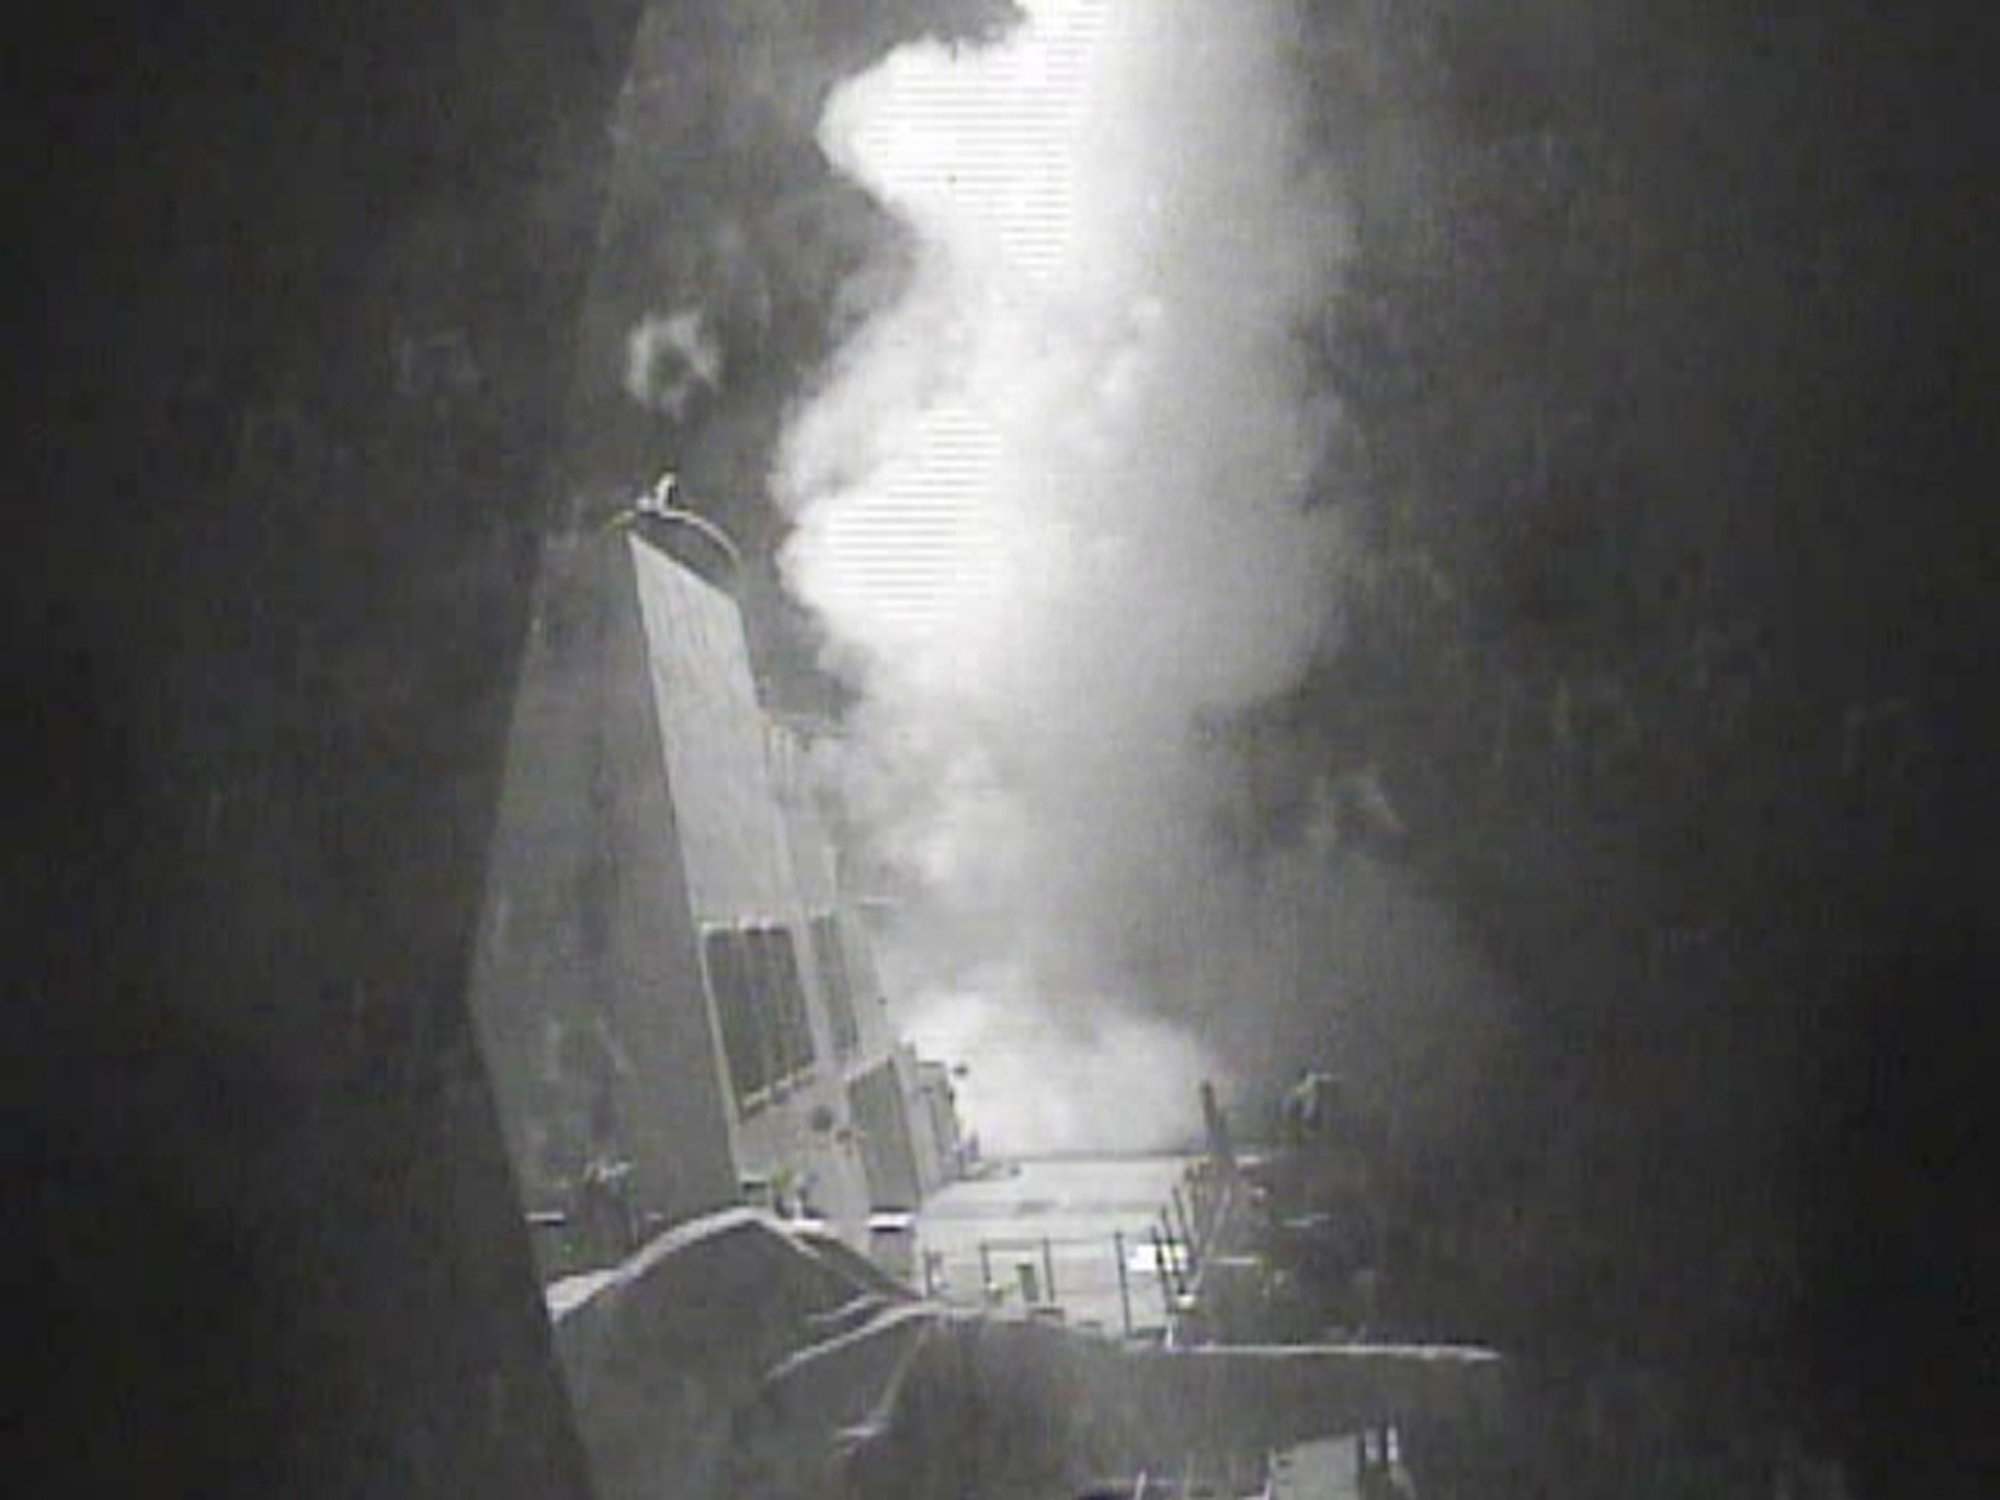 The guided missile destroyer USS Nitze (DDG 94) launches a strike against coastal sites in Houthi-controlled territory on Yemen's Red Sea coast on Oct. 13, 2016.